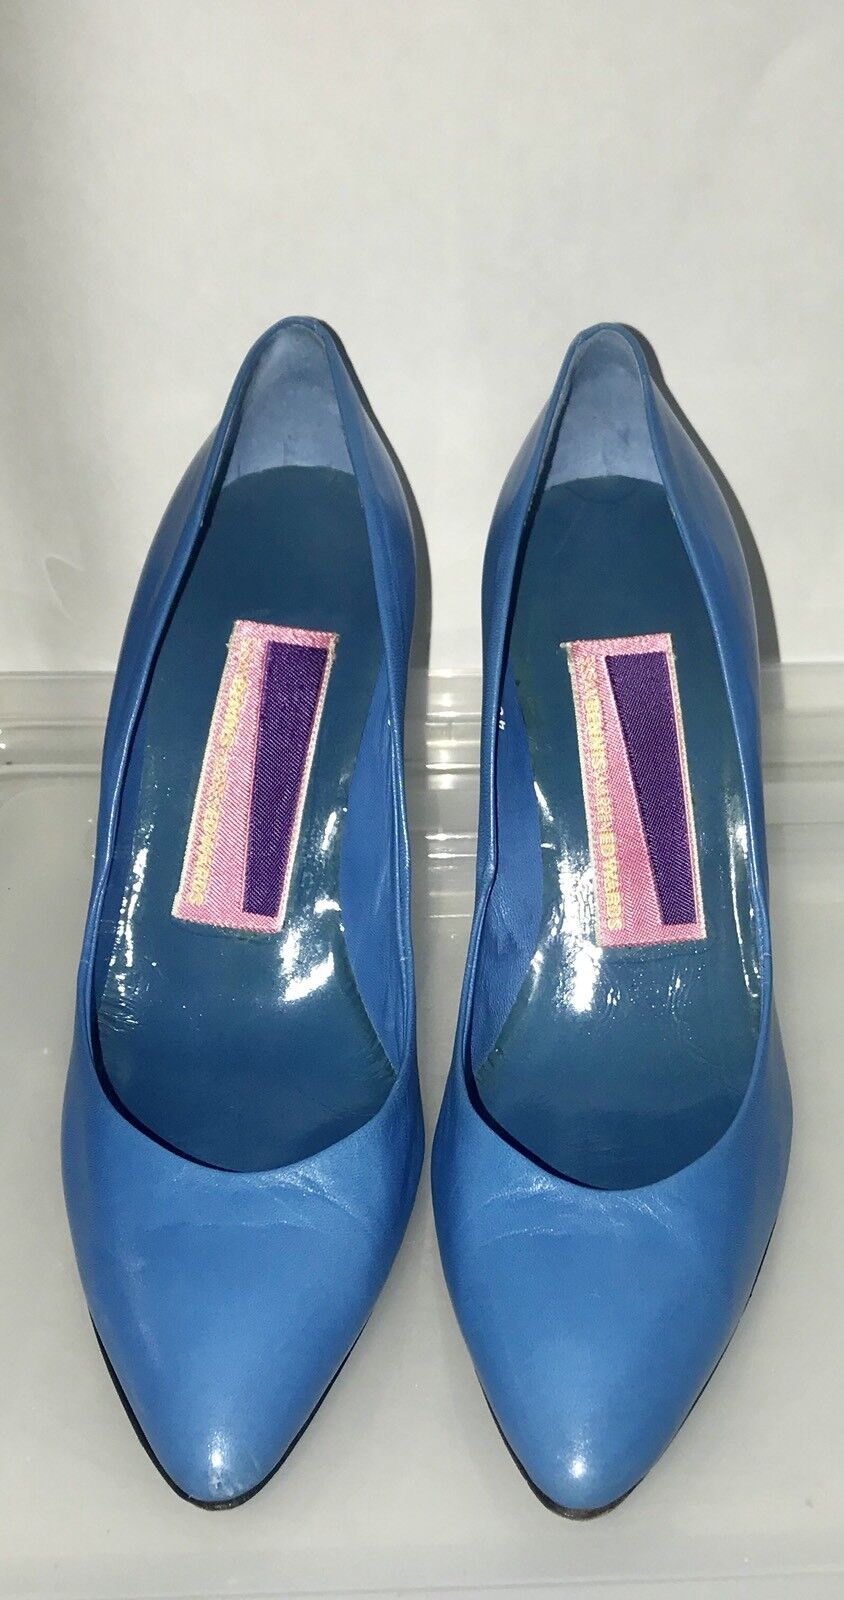 Susan Bennis Warren Edwards Blau Heels 9 B Original Owner